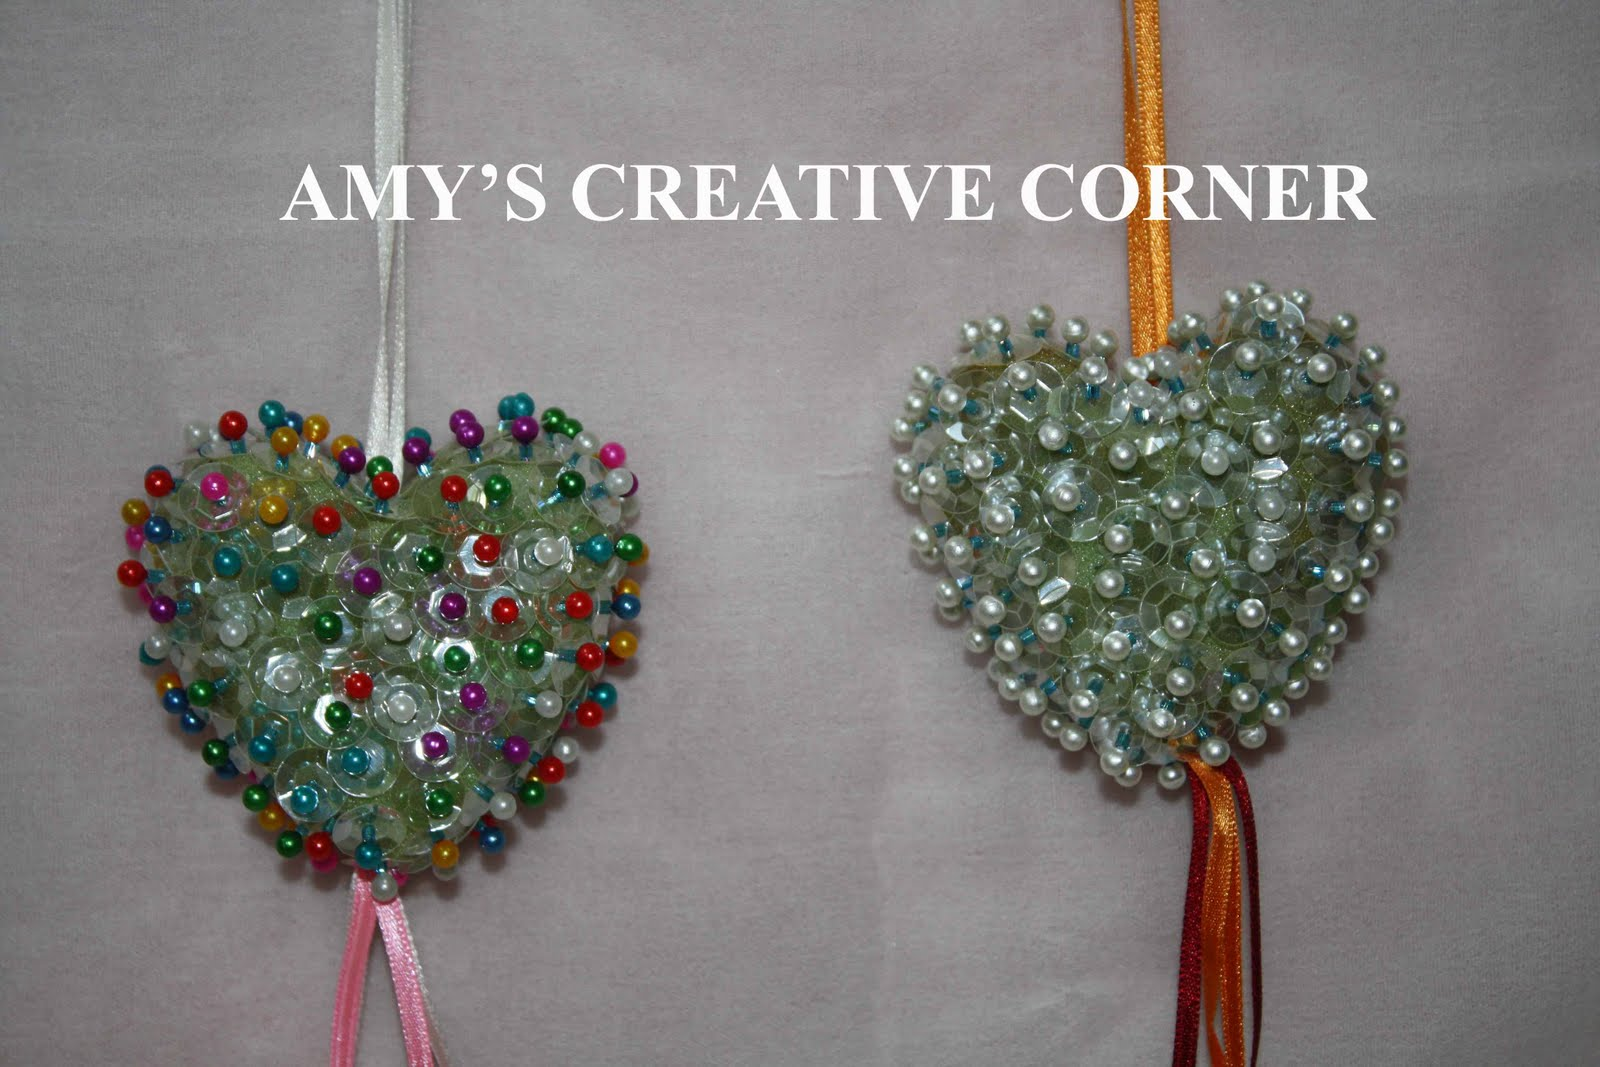 Ninny S And Amy S Creative Corner Door Knob Hangers